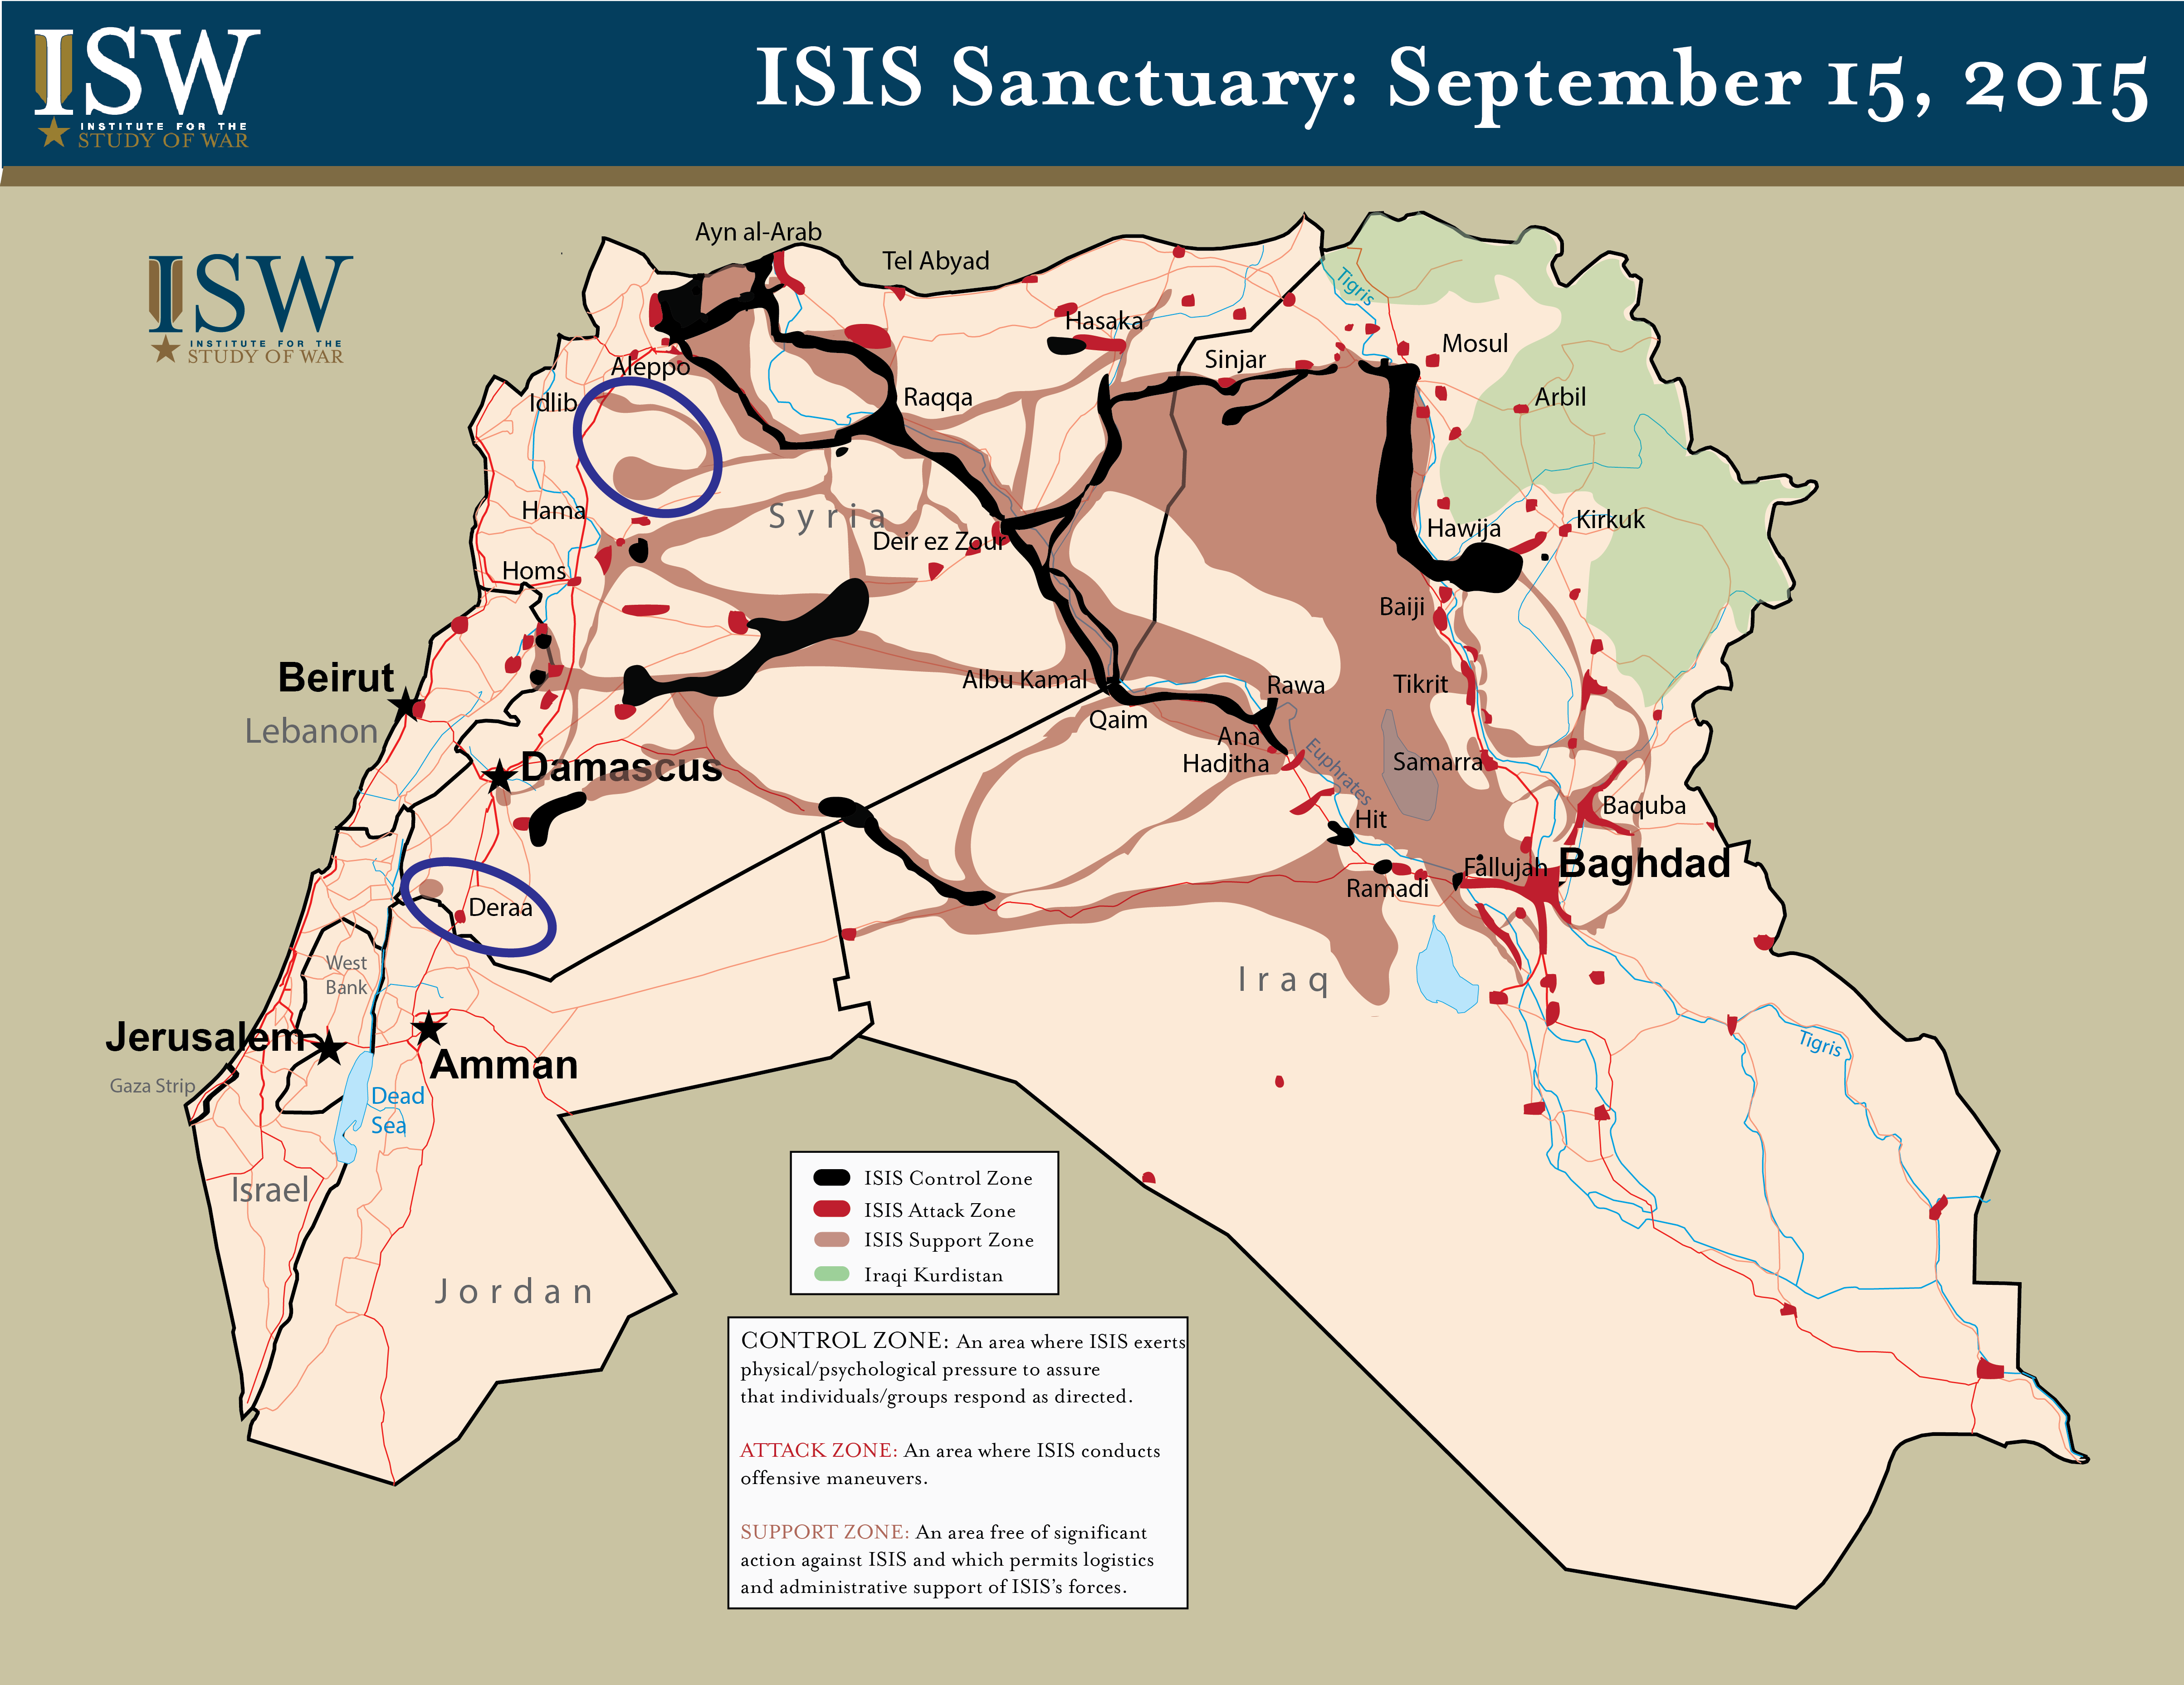 isis sanctuary 15 sept 2015-01